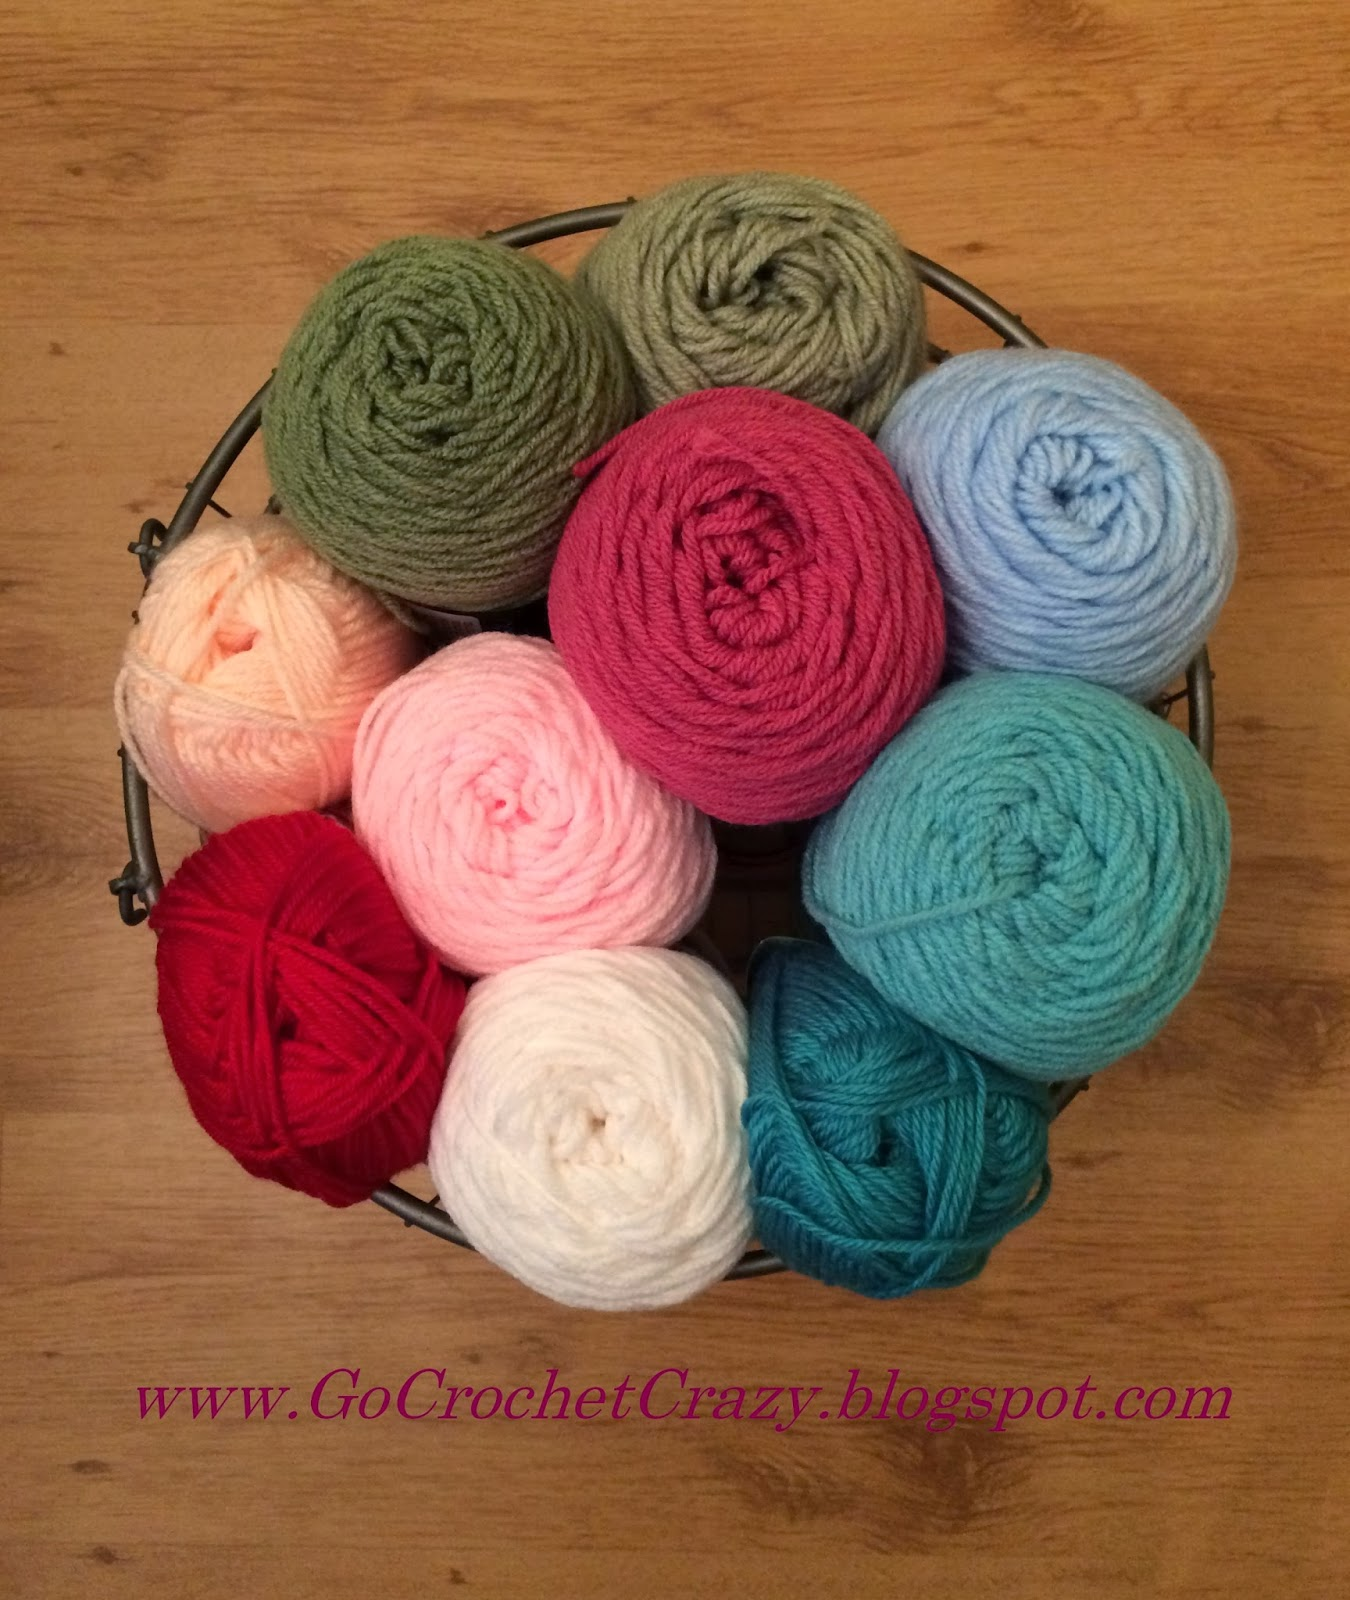 A lovely yarn selection for an upcoming giant granny afghan with Cath Kidston-inspired colors.